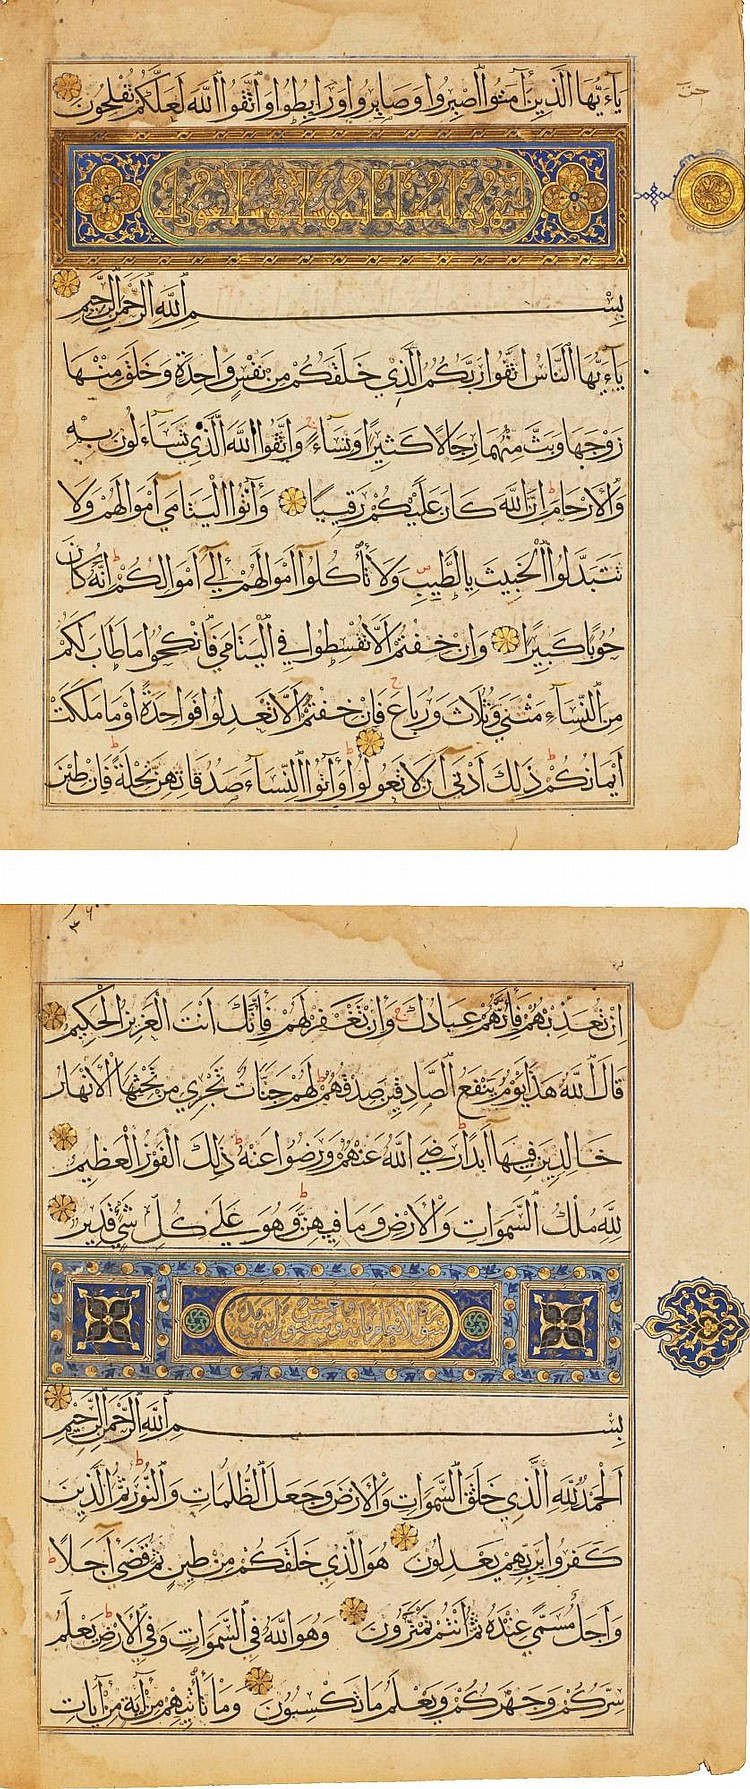 TWO ILLUMINATED QUR'AN LEAVES, PERSIA OR EGYPT, ILKHANID OR MAMLUK, 14TH CENTURY |